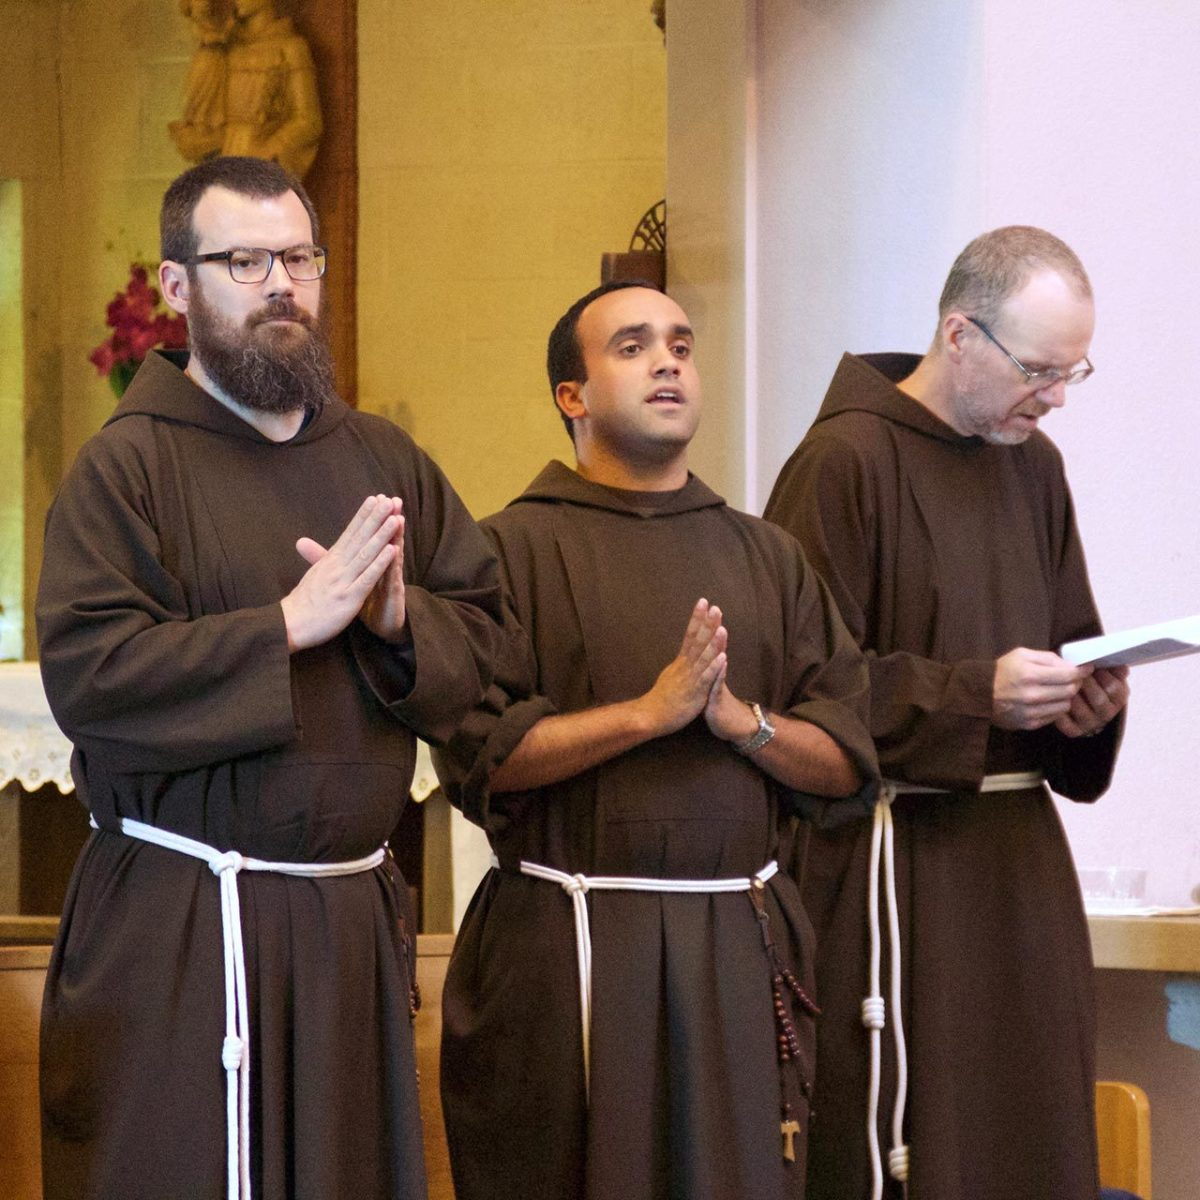 The Capuchin brothers. Source: Capuchin.org.